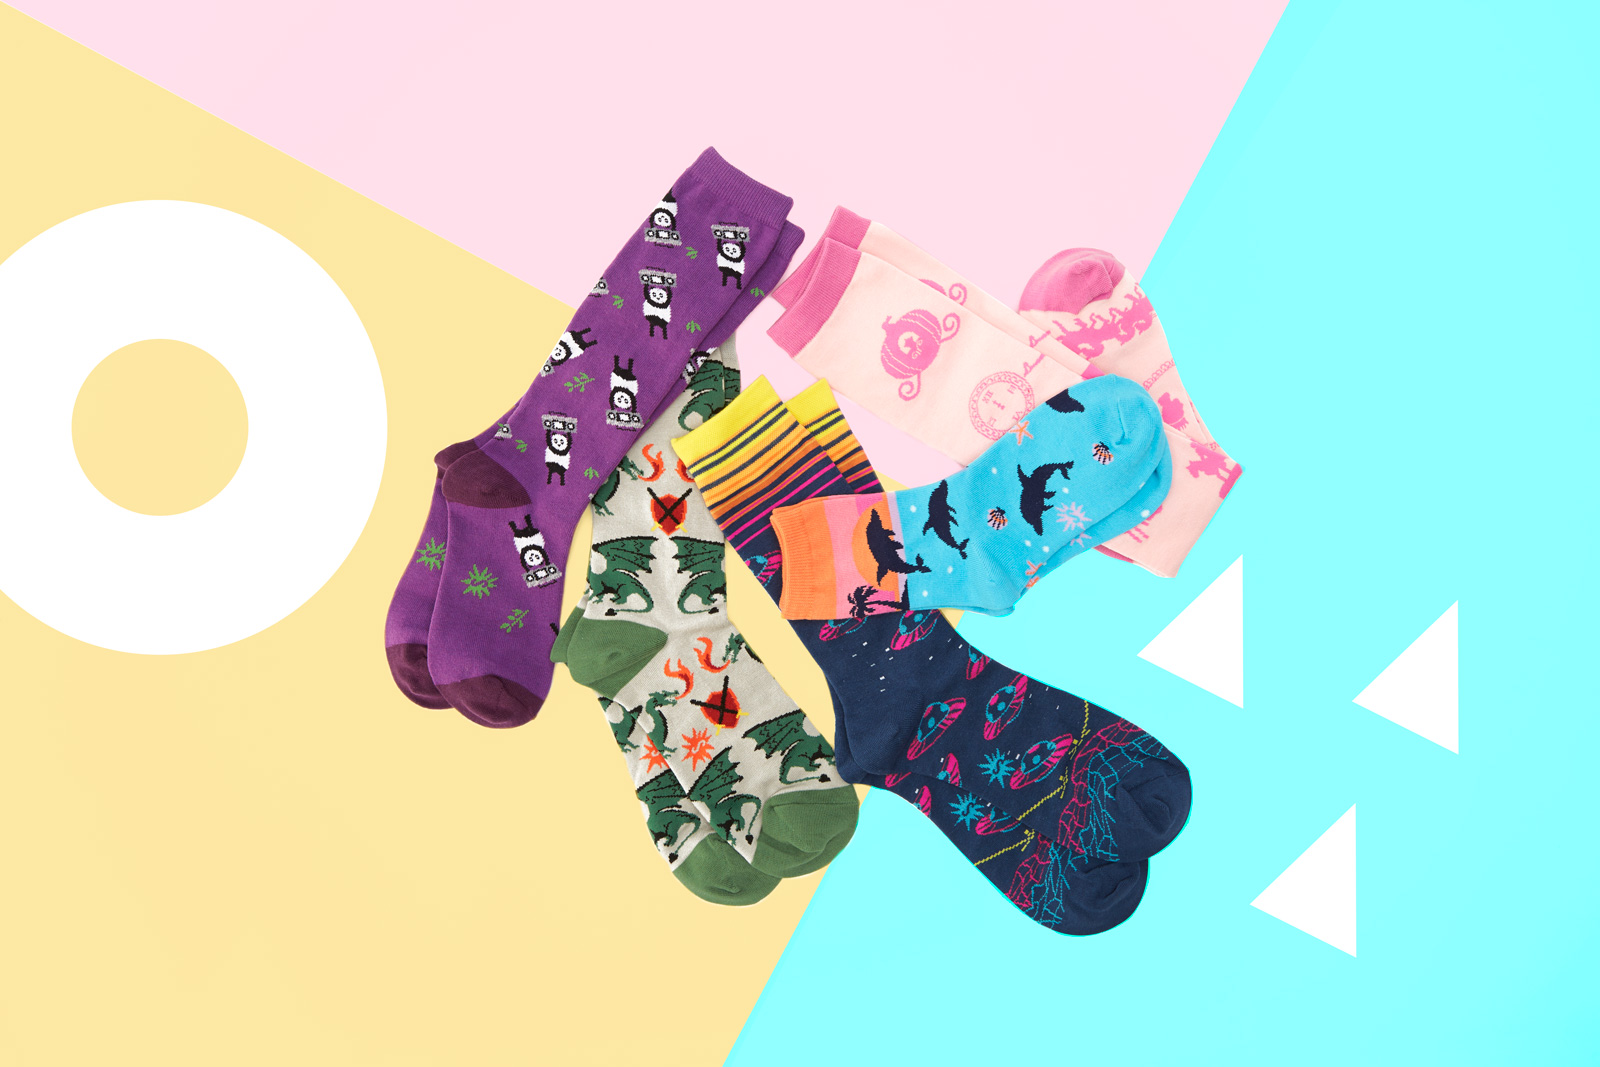 Panda Anything Knee High Socks for Junior JK0055, Beware of Dragons Crew Socks for Men MEF0296, Intergalactic Crew Socks for Men MEF0292, Dancing Dolphin Crew Socks for Women W0117, Happily Ever After Knee High Socks for Women F0419.